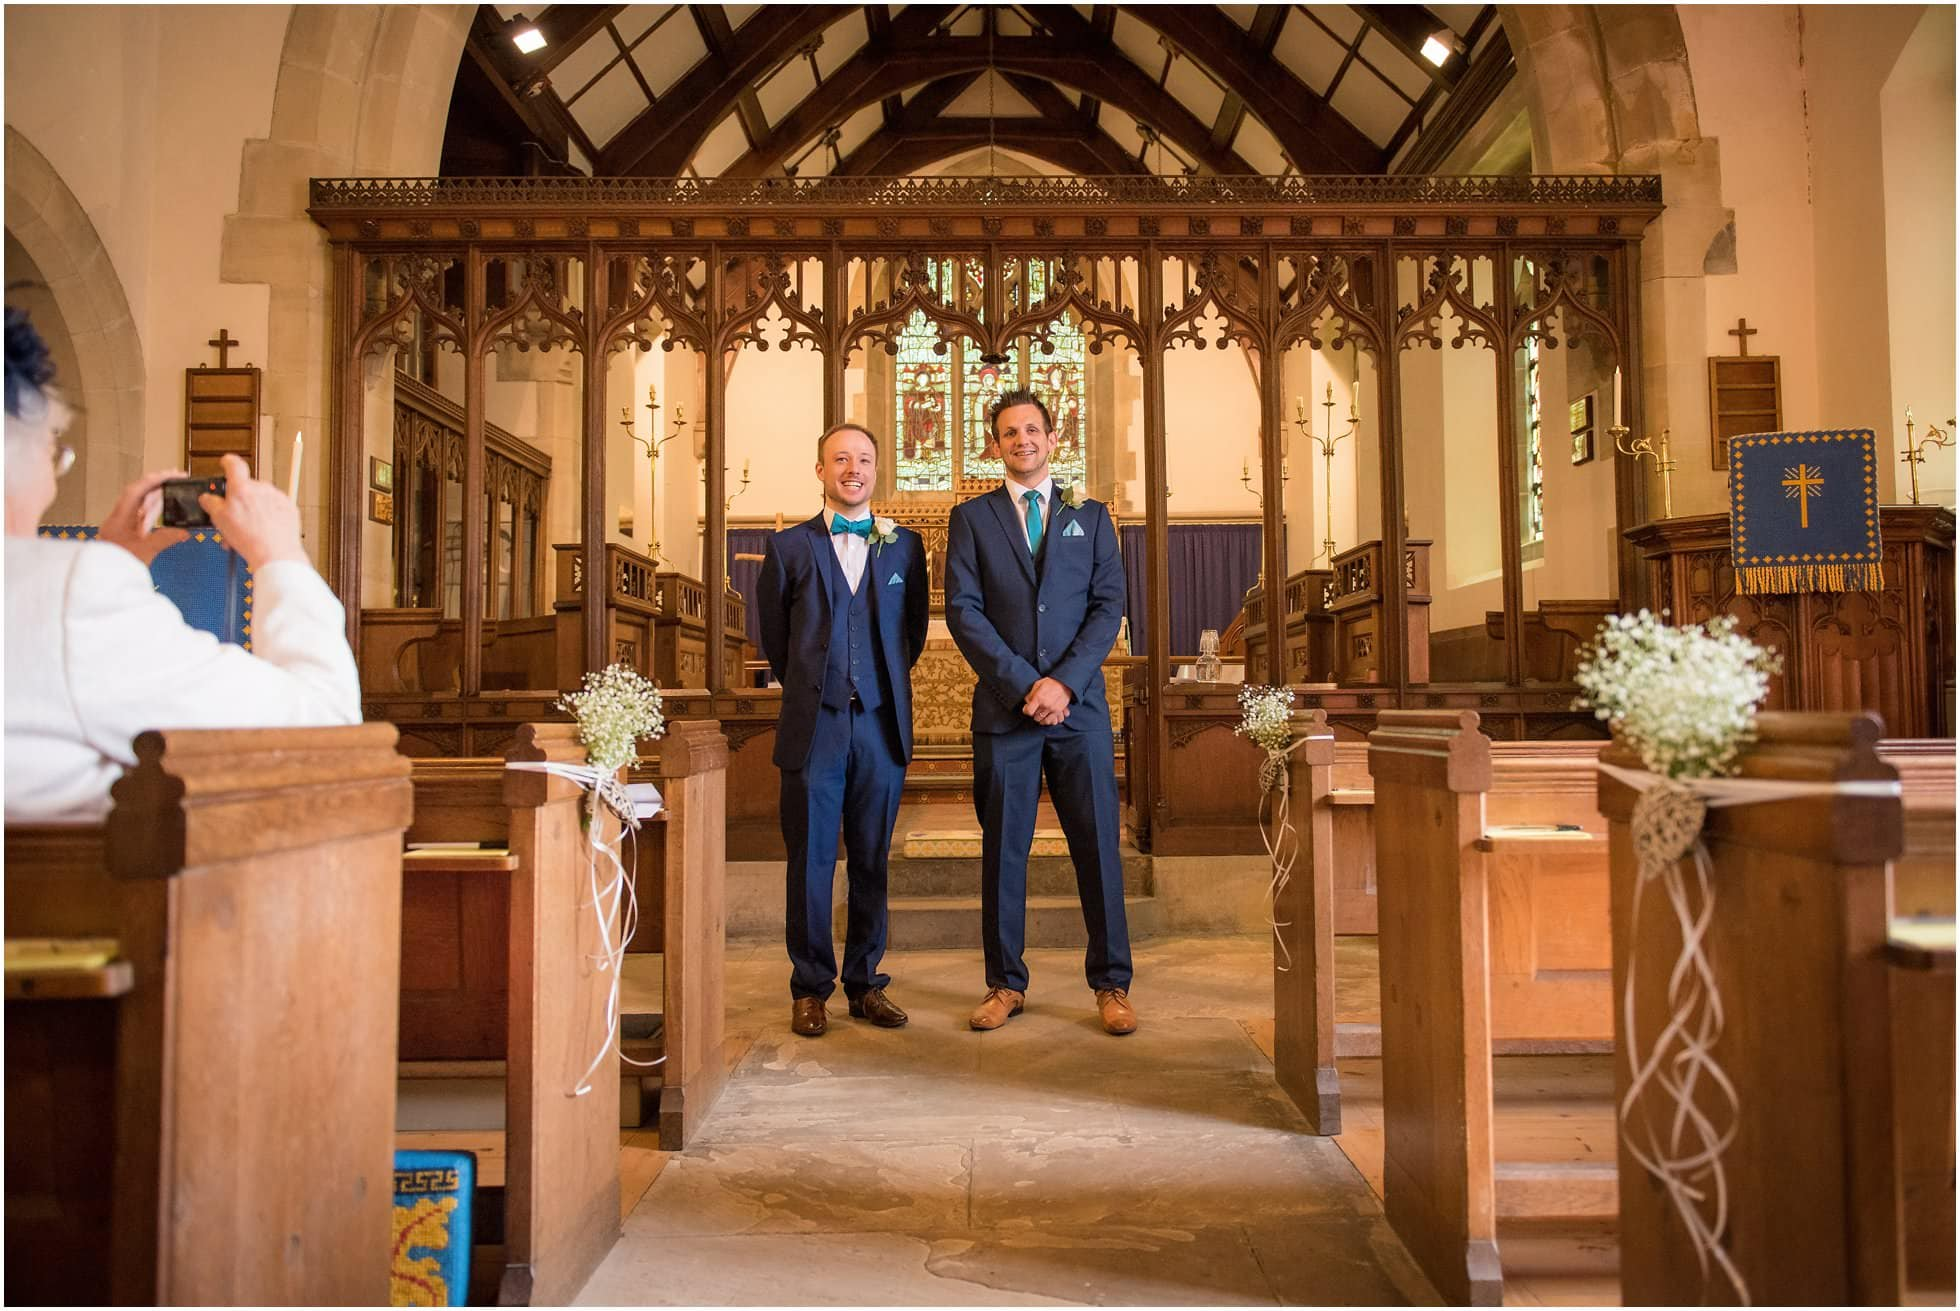 Groom and bestman wait for the stunning bride